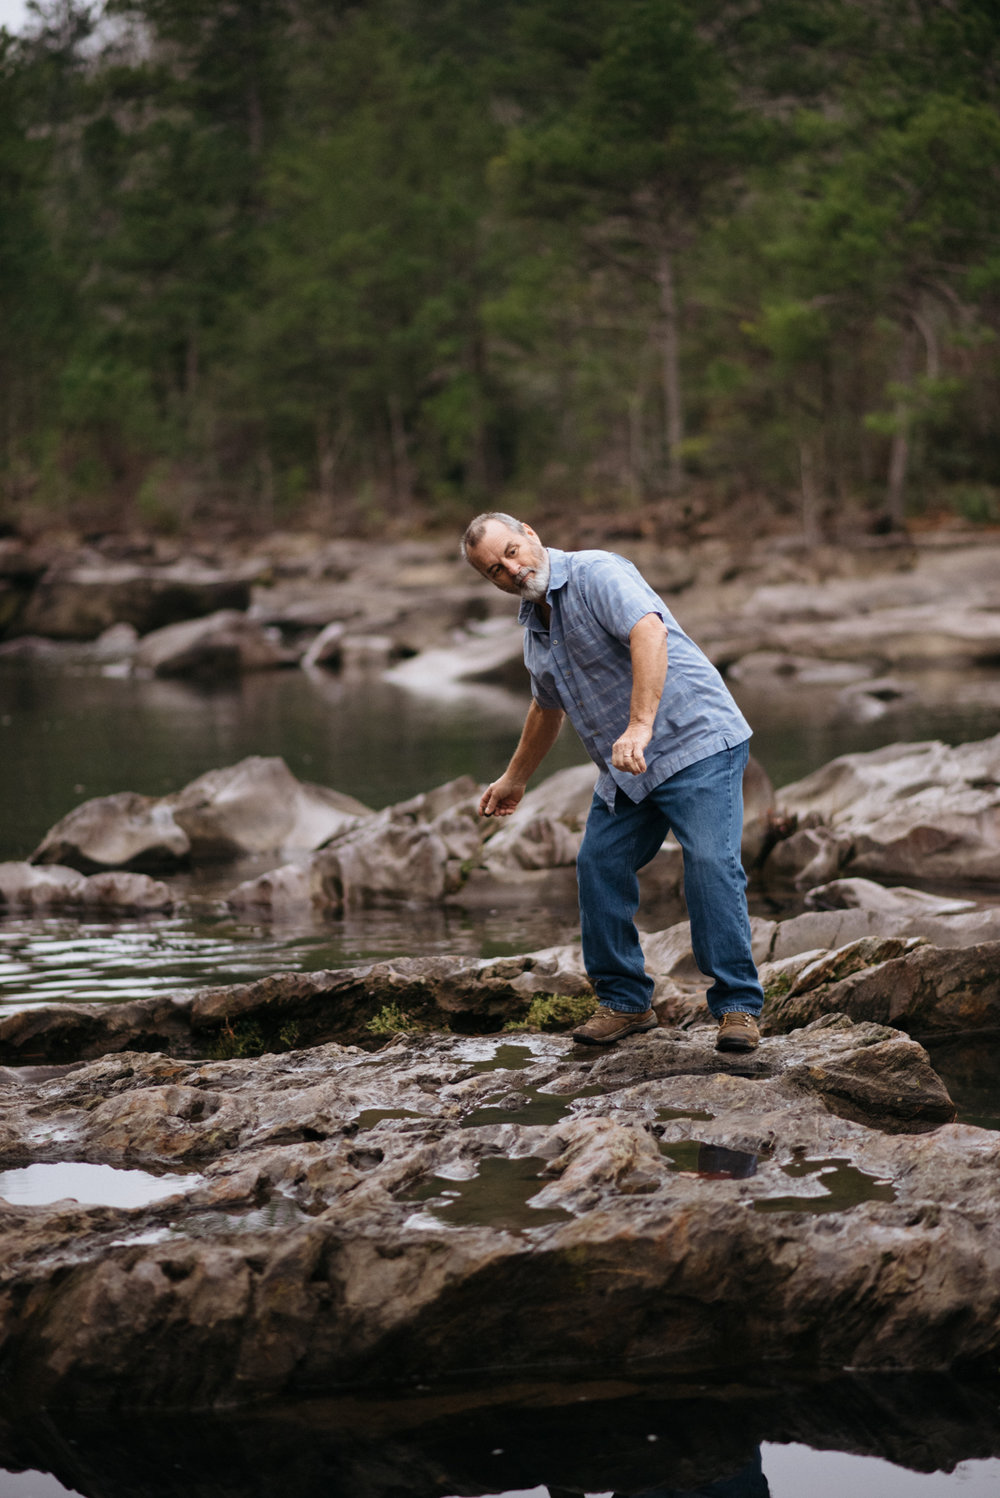 Skipping stones on Ocoee River